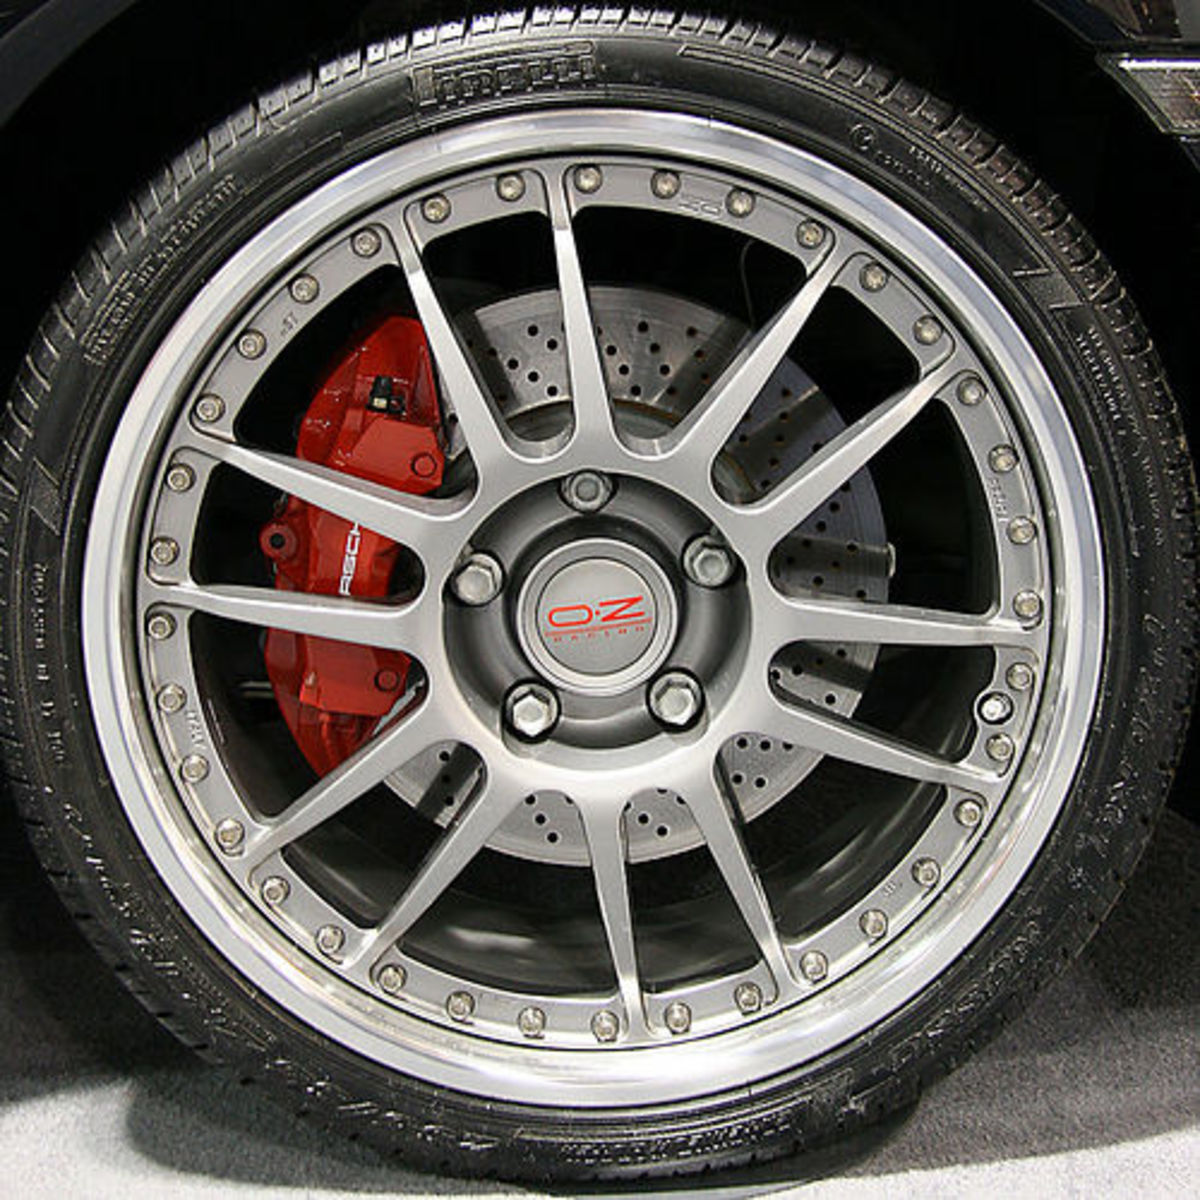 Close-Up Porsche Tire (Photo courtesy by Rockies from Flickr)